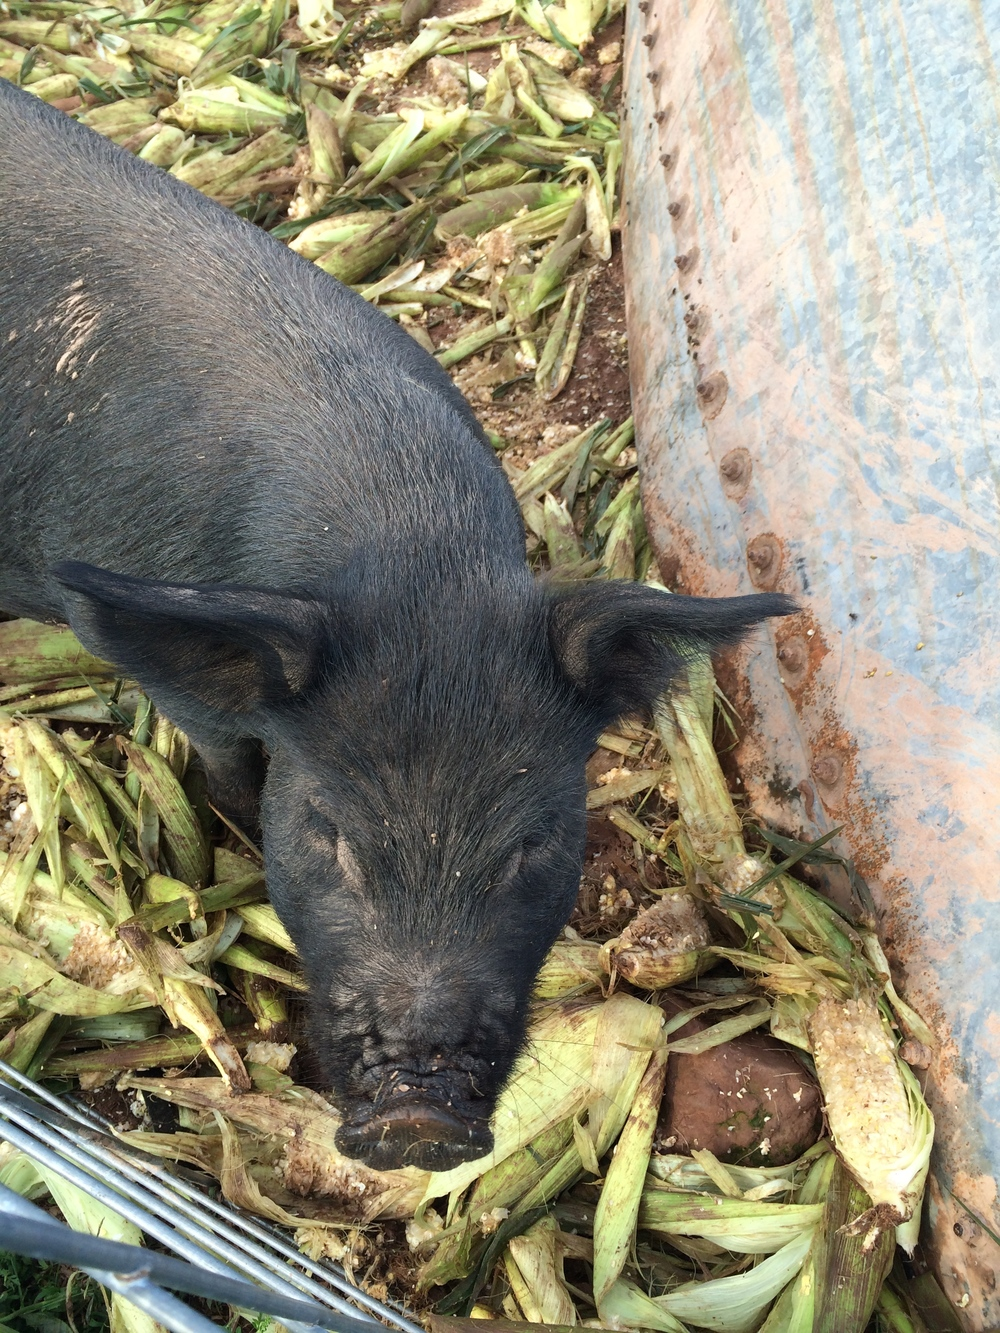 One of our sweet sows, enjoying some corn